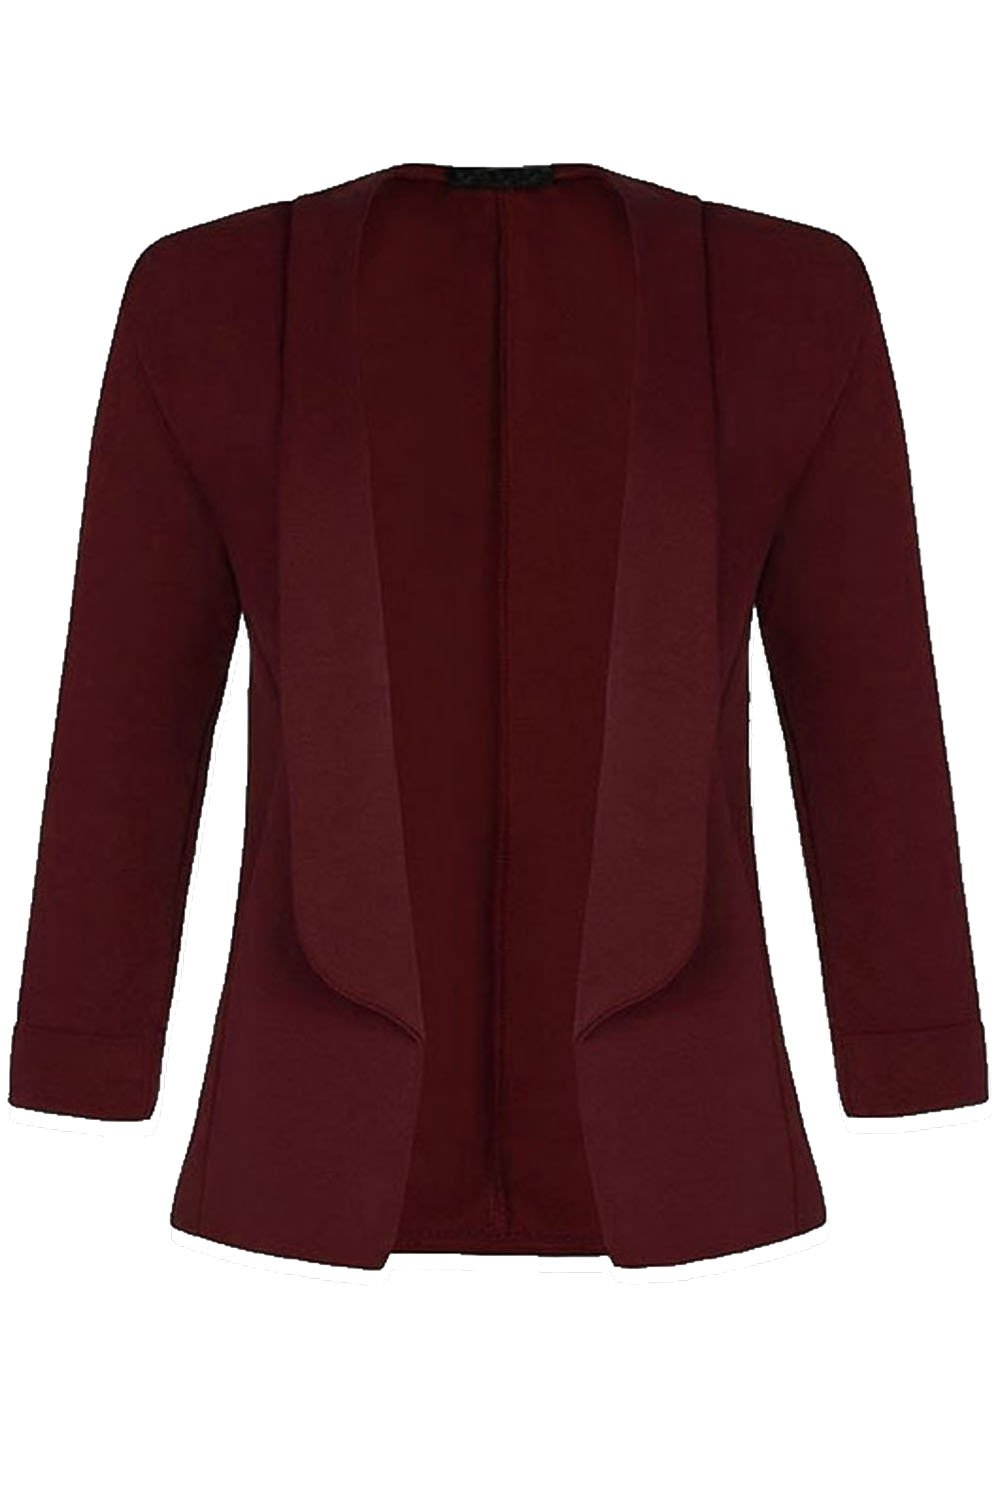 Be Jealous Womens Ladies Stretchy 3/4 Short Turn Up Coat Blazer Jacket